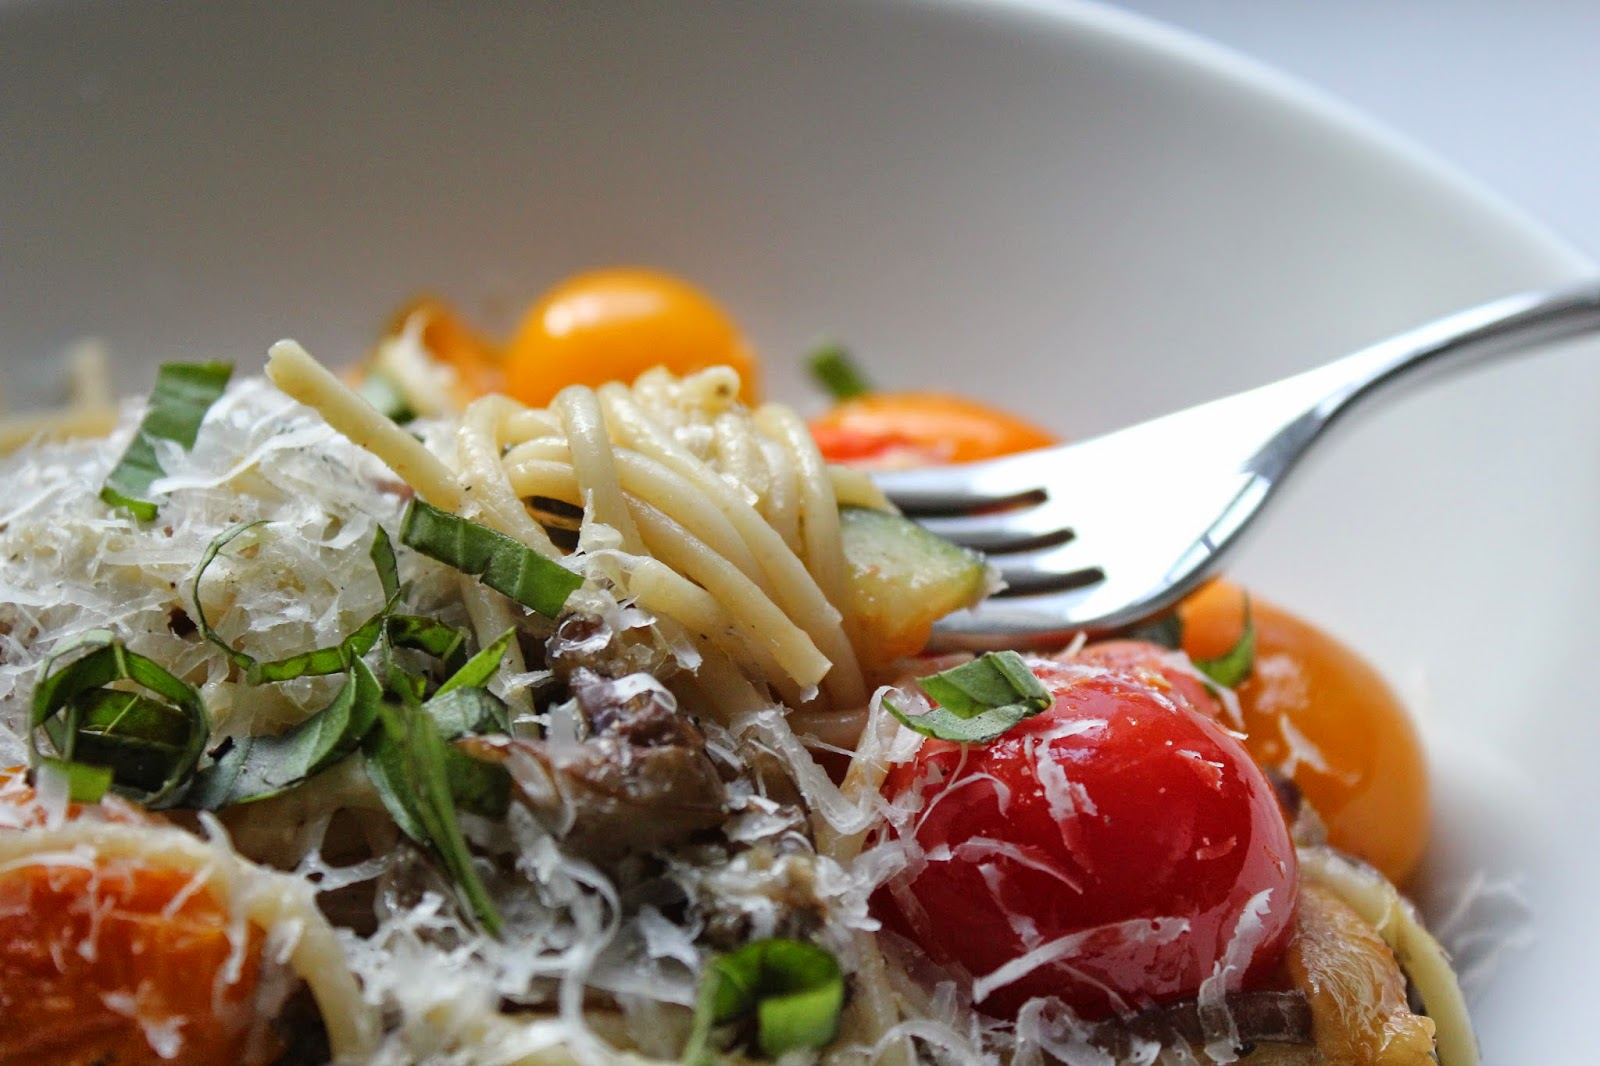 Pasta with summer vegetables, garlic, and basil